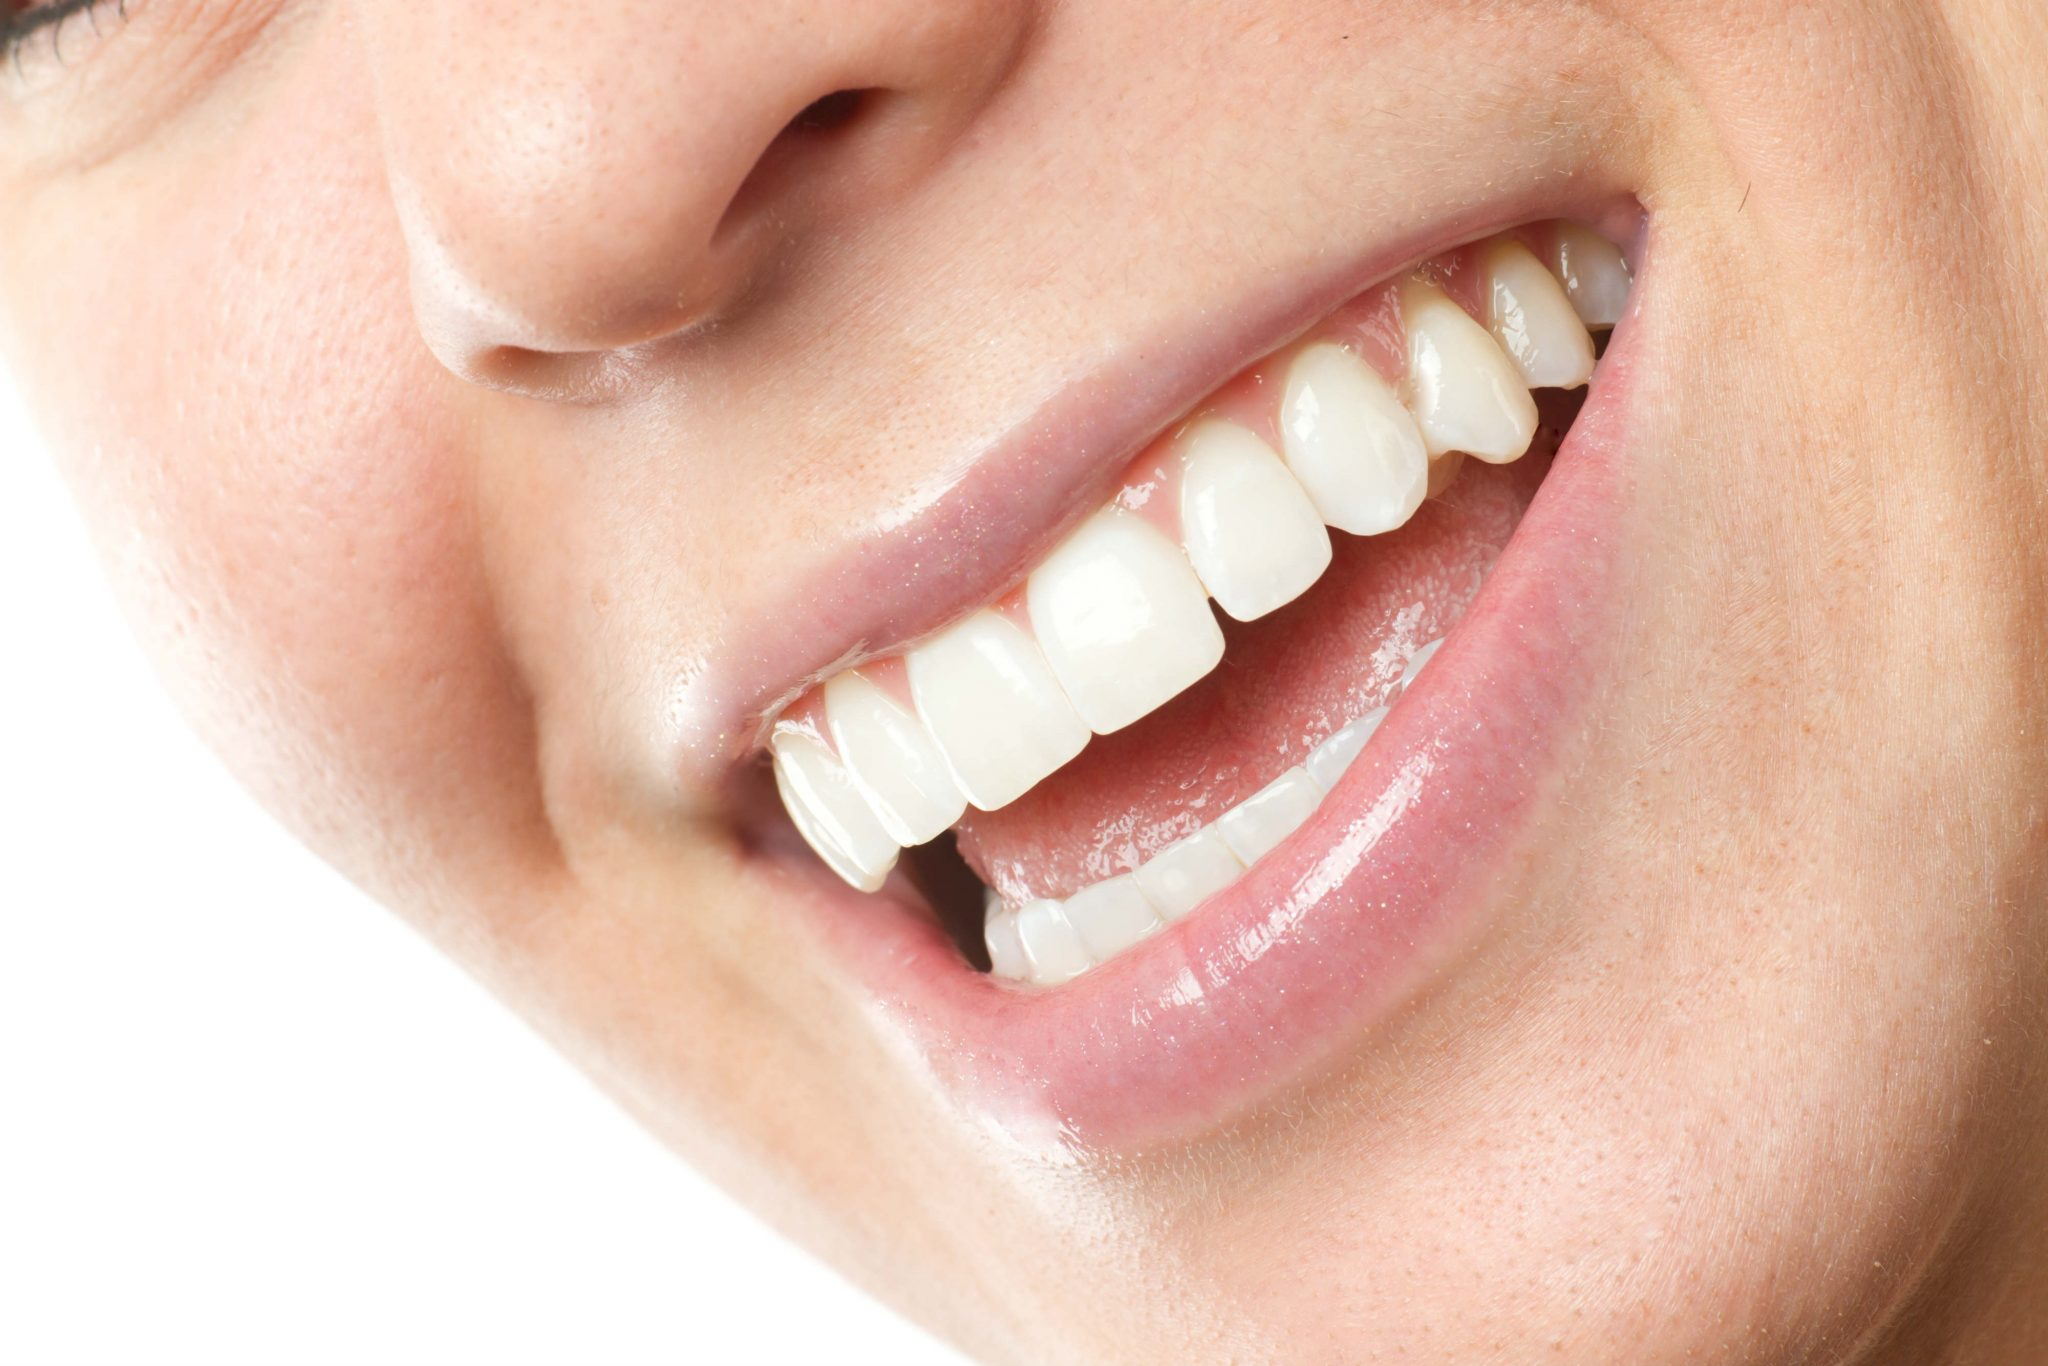 woman-smiling-closeup-with-white-teeth-and-straight-smile